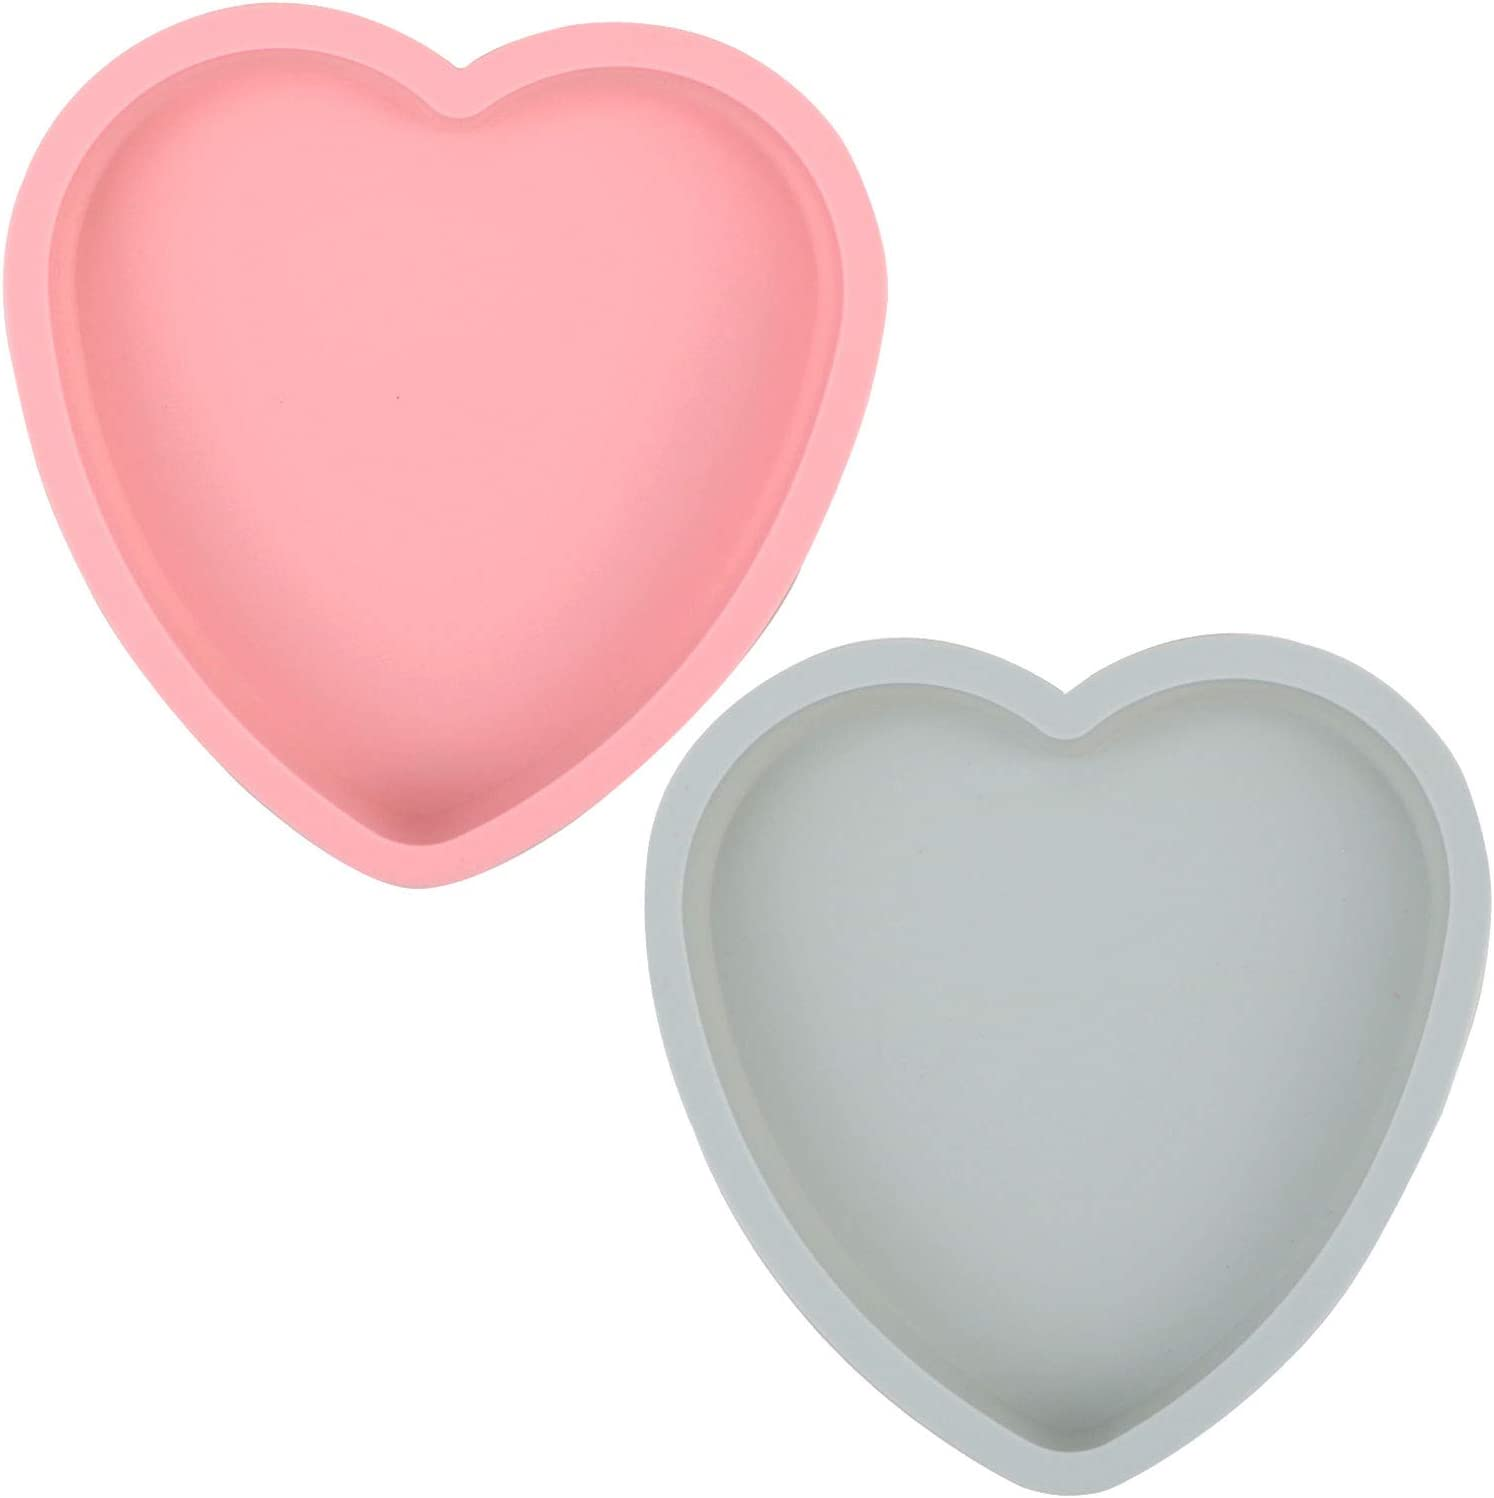 Goeielewe 2PCS Heart Shaped Cake Pan Silicone Cake Mold Baking Pans Non-Stick Cake Bakeware Mold, Chocolate Baking Tray Valentine's Gift - Pink&Blue-gray Colors (8 Inches)